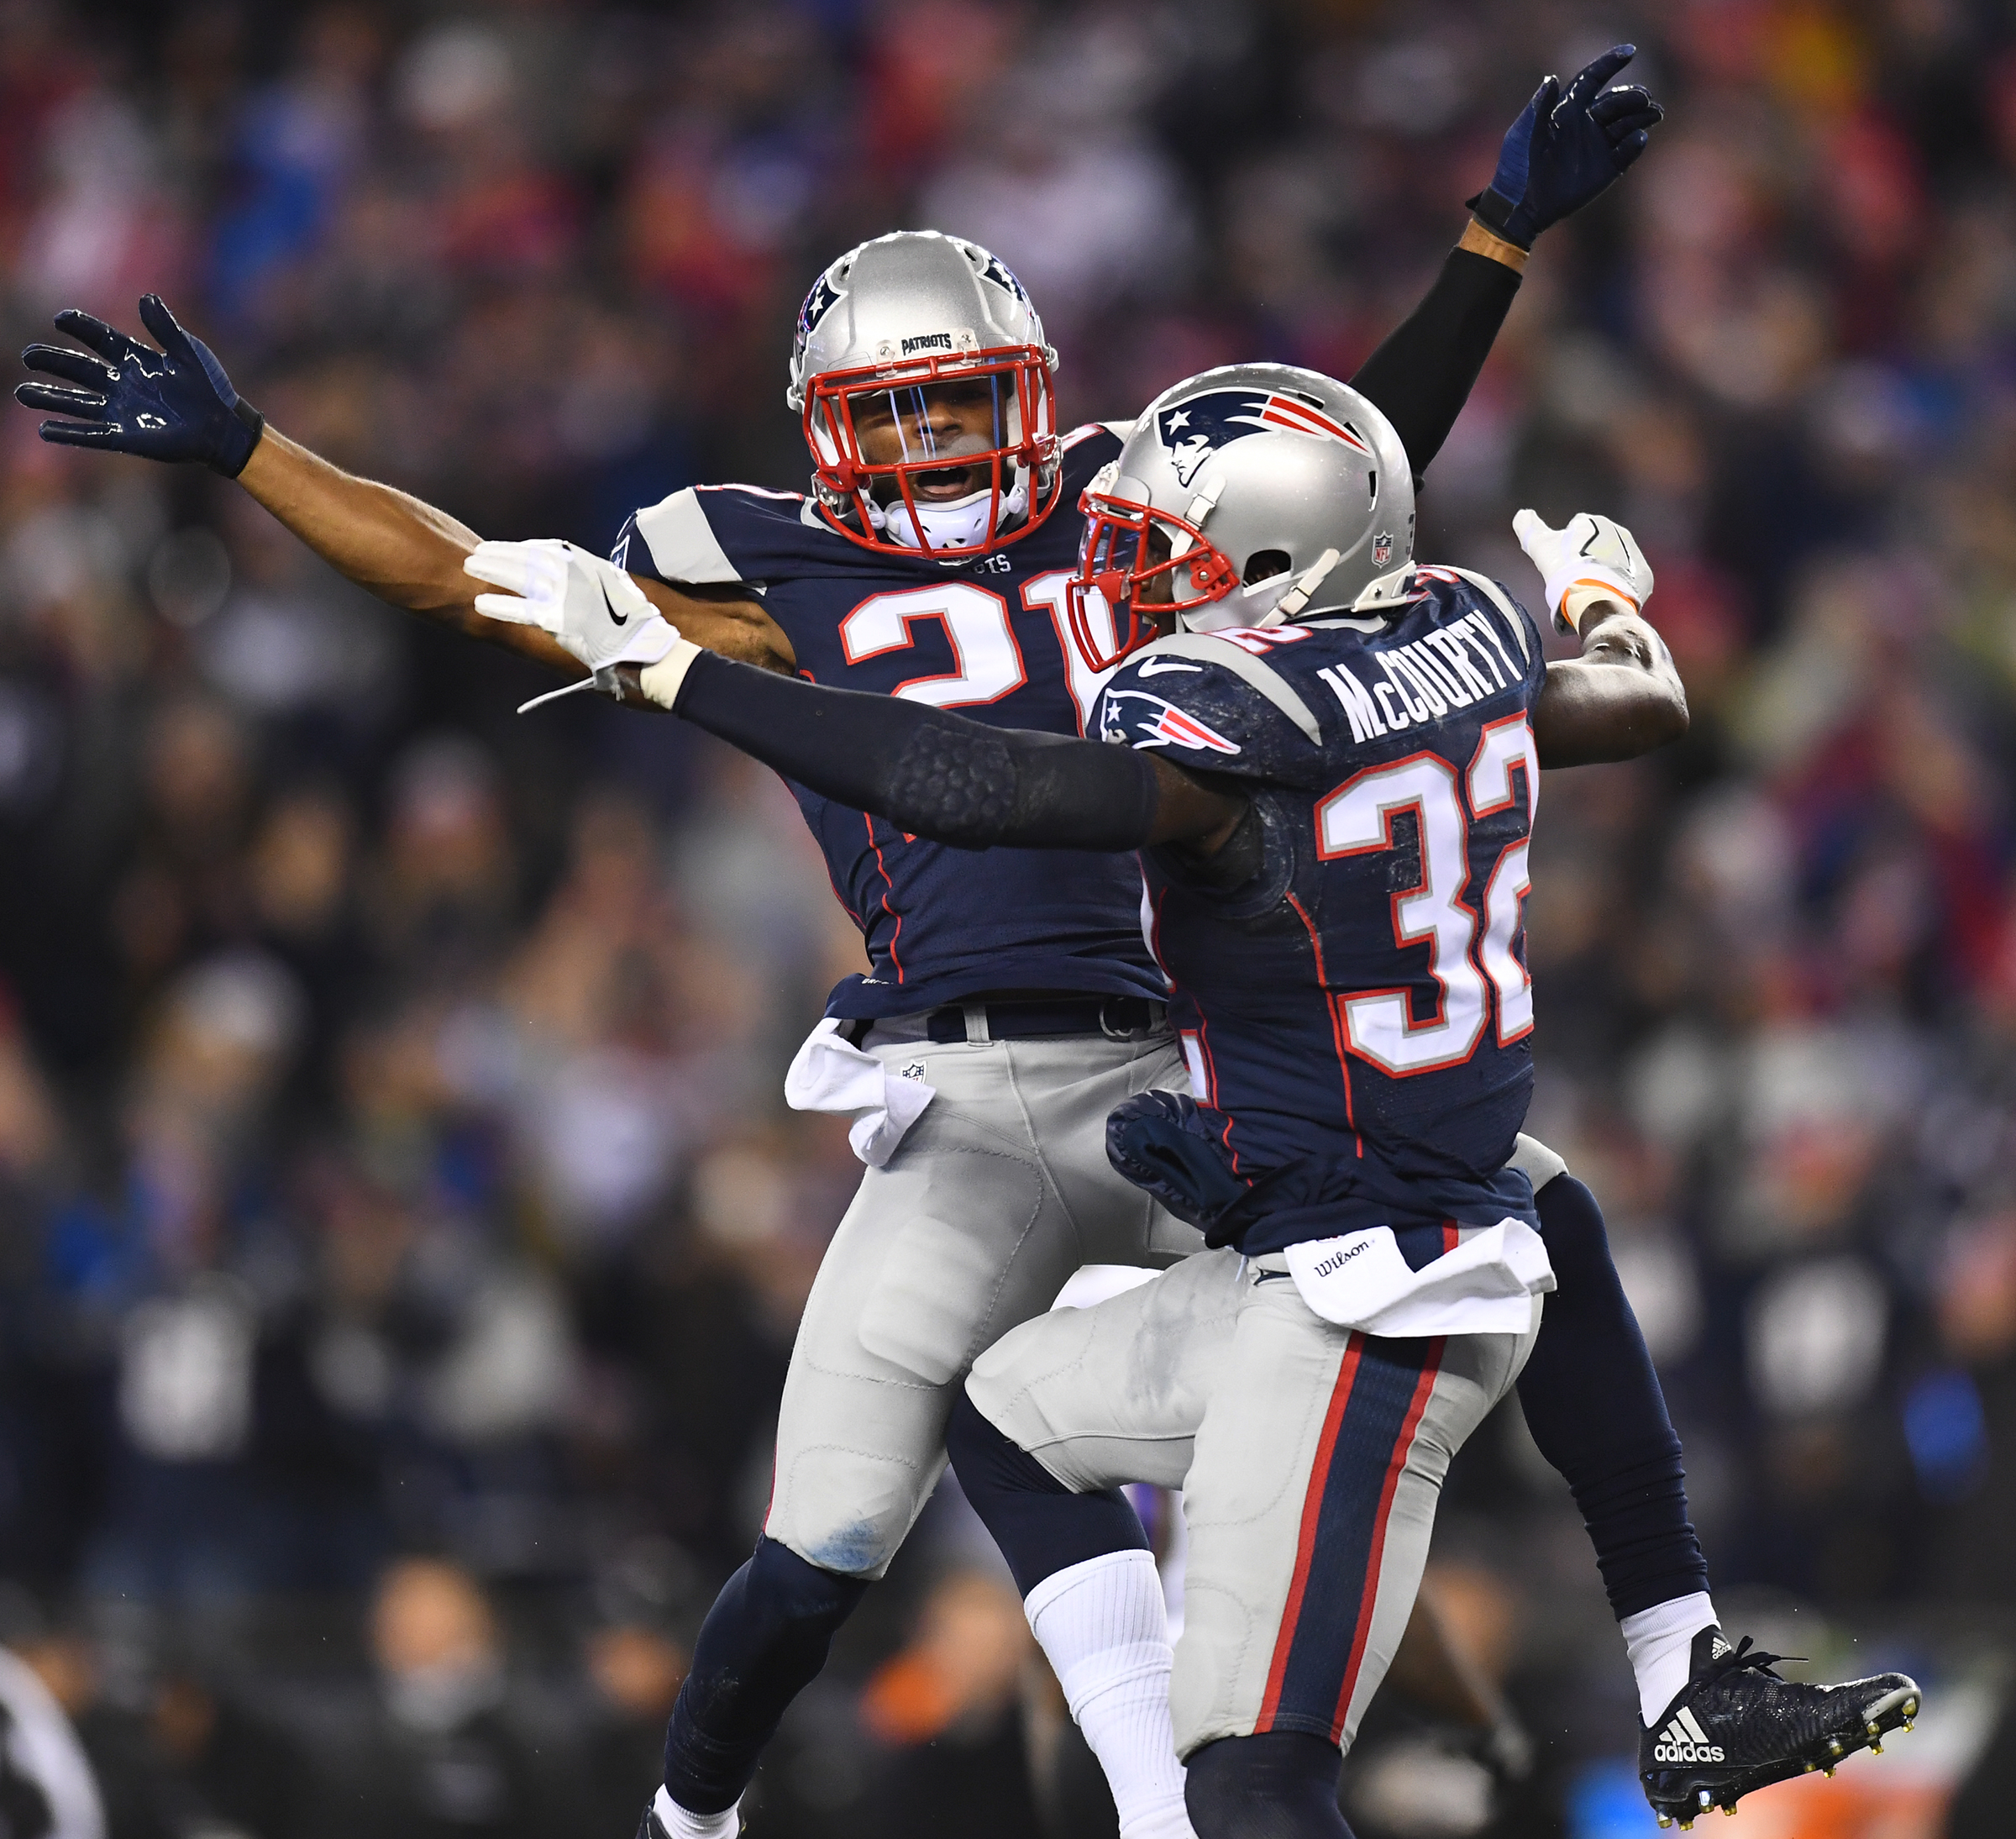 Foxborough-ma-december-12-2016-gillette-stadium-malcolm-butler-21-and-devin-mccourty-32-of-the-new-england-patriots-during-a-regular-season-monday-night-football-game-photo-by-joe-faraoni-espn-im